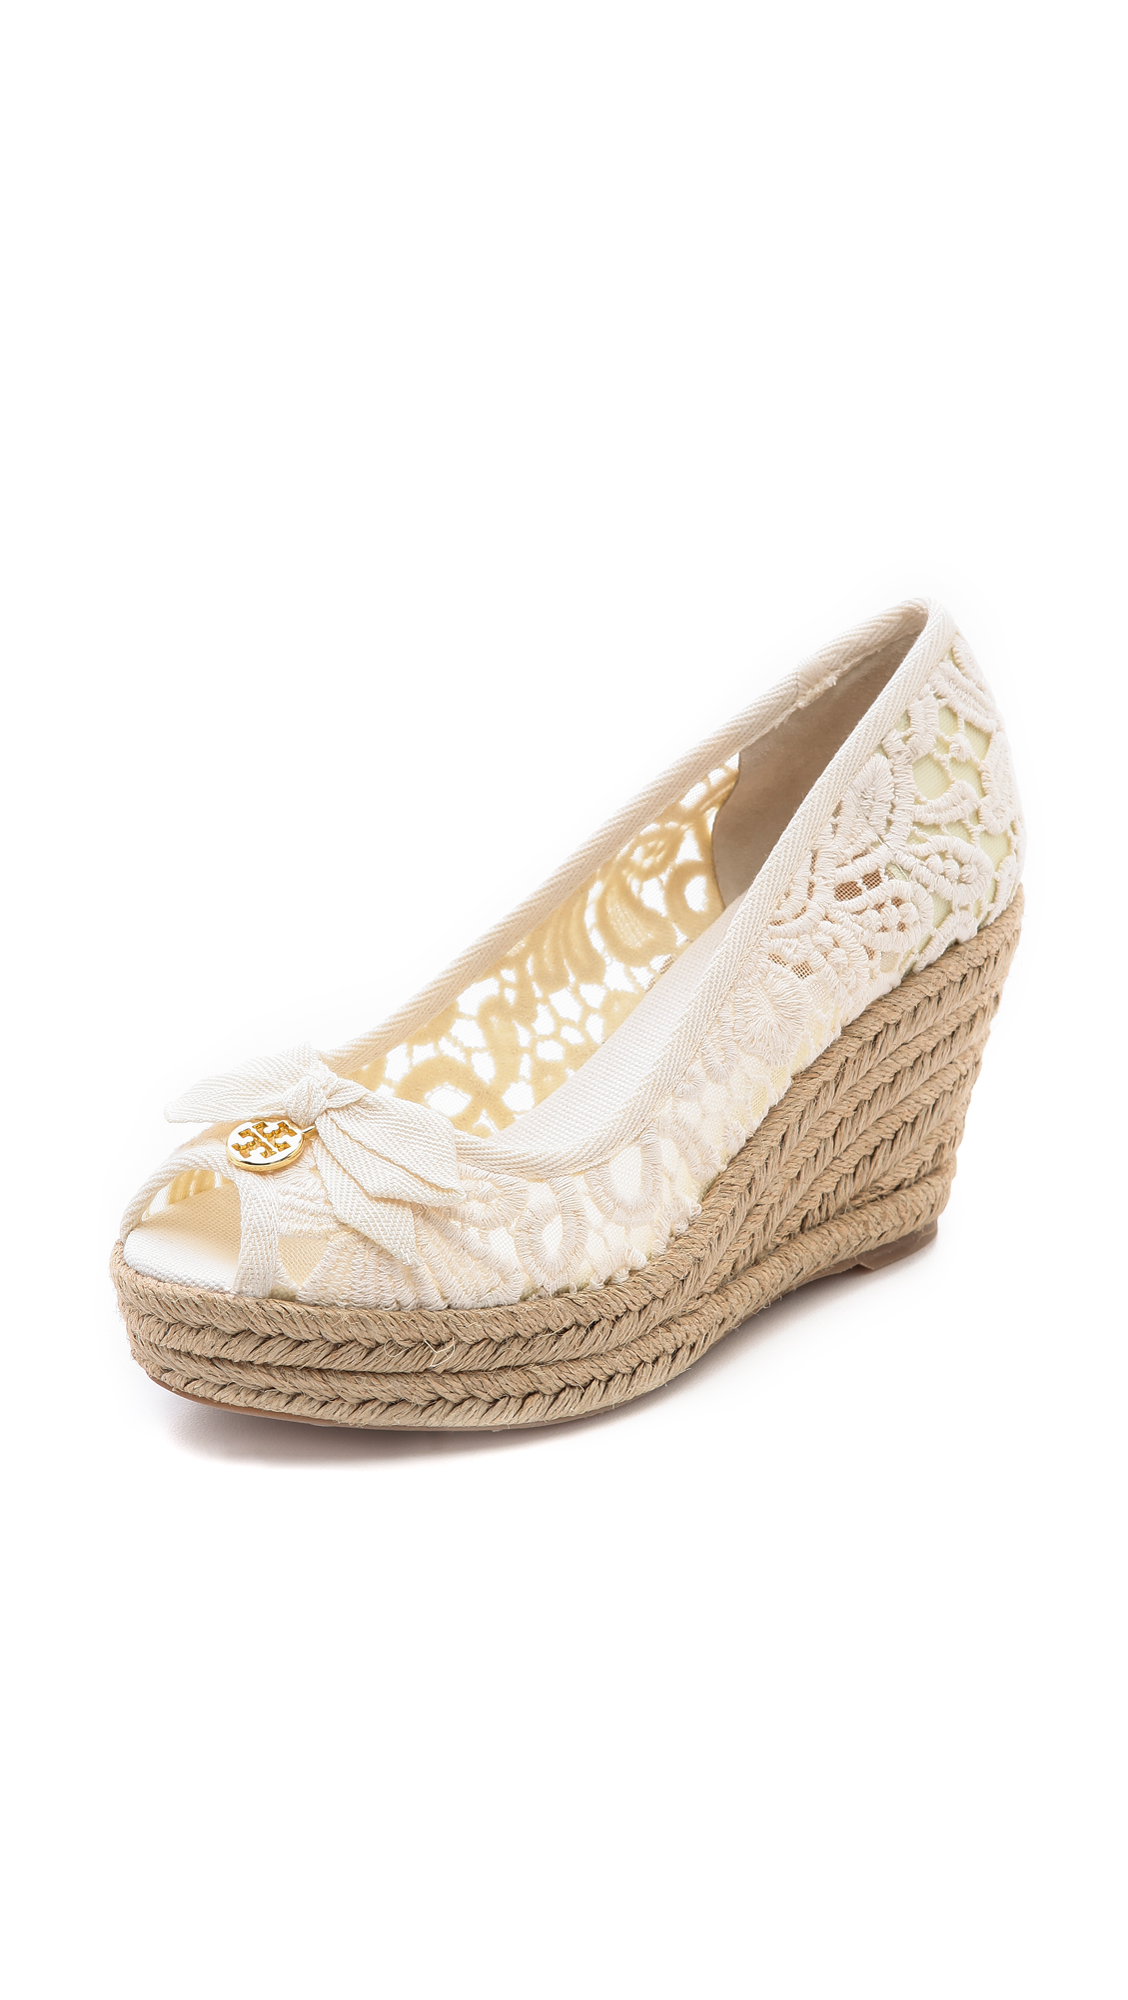 accf6ae523d8 Lyst - Tory Burch Jackie Peep Toe Wedge Espadrille in White